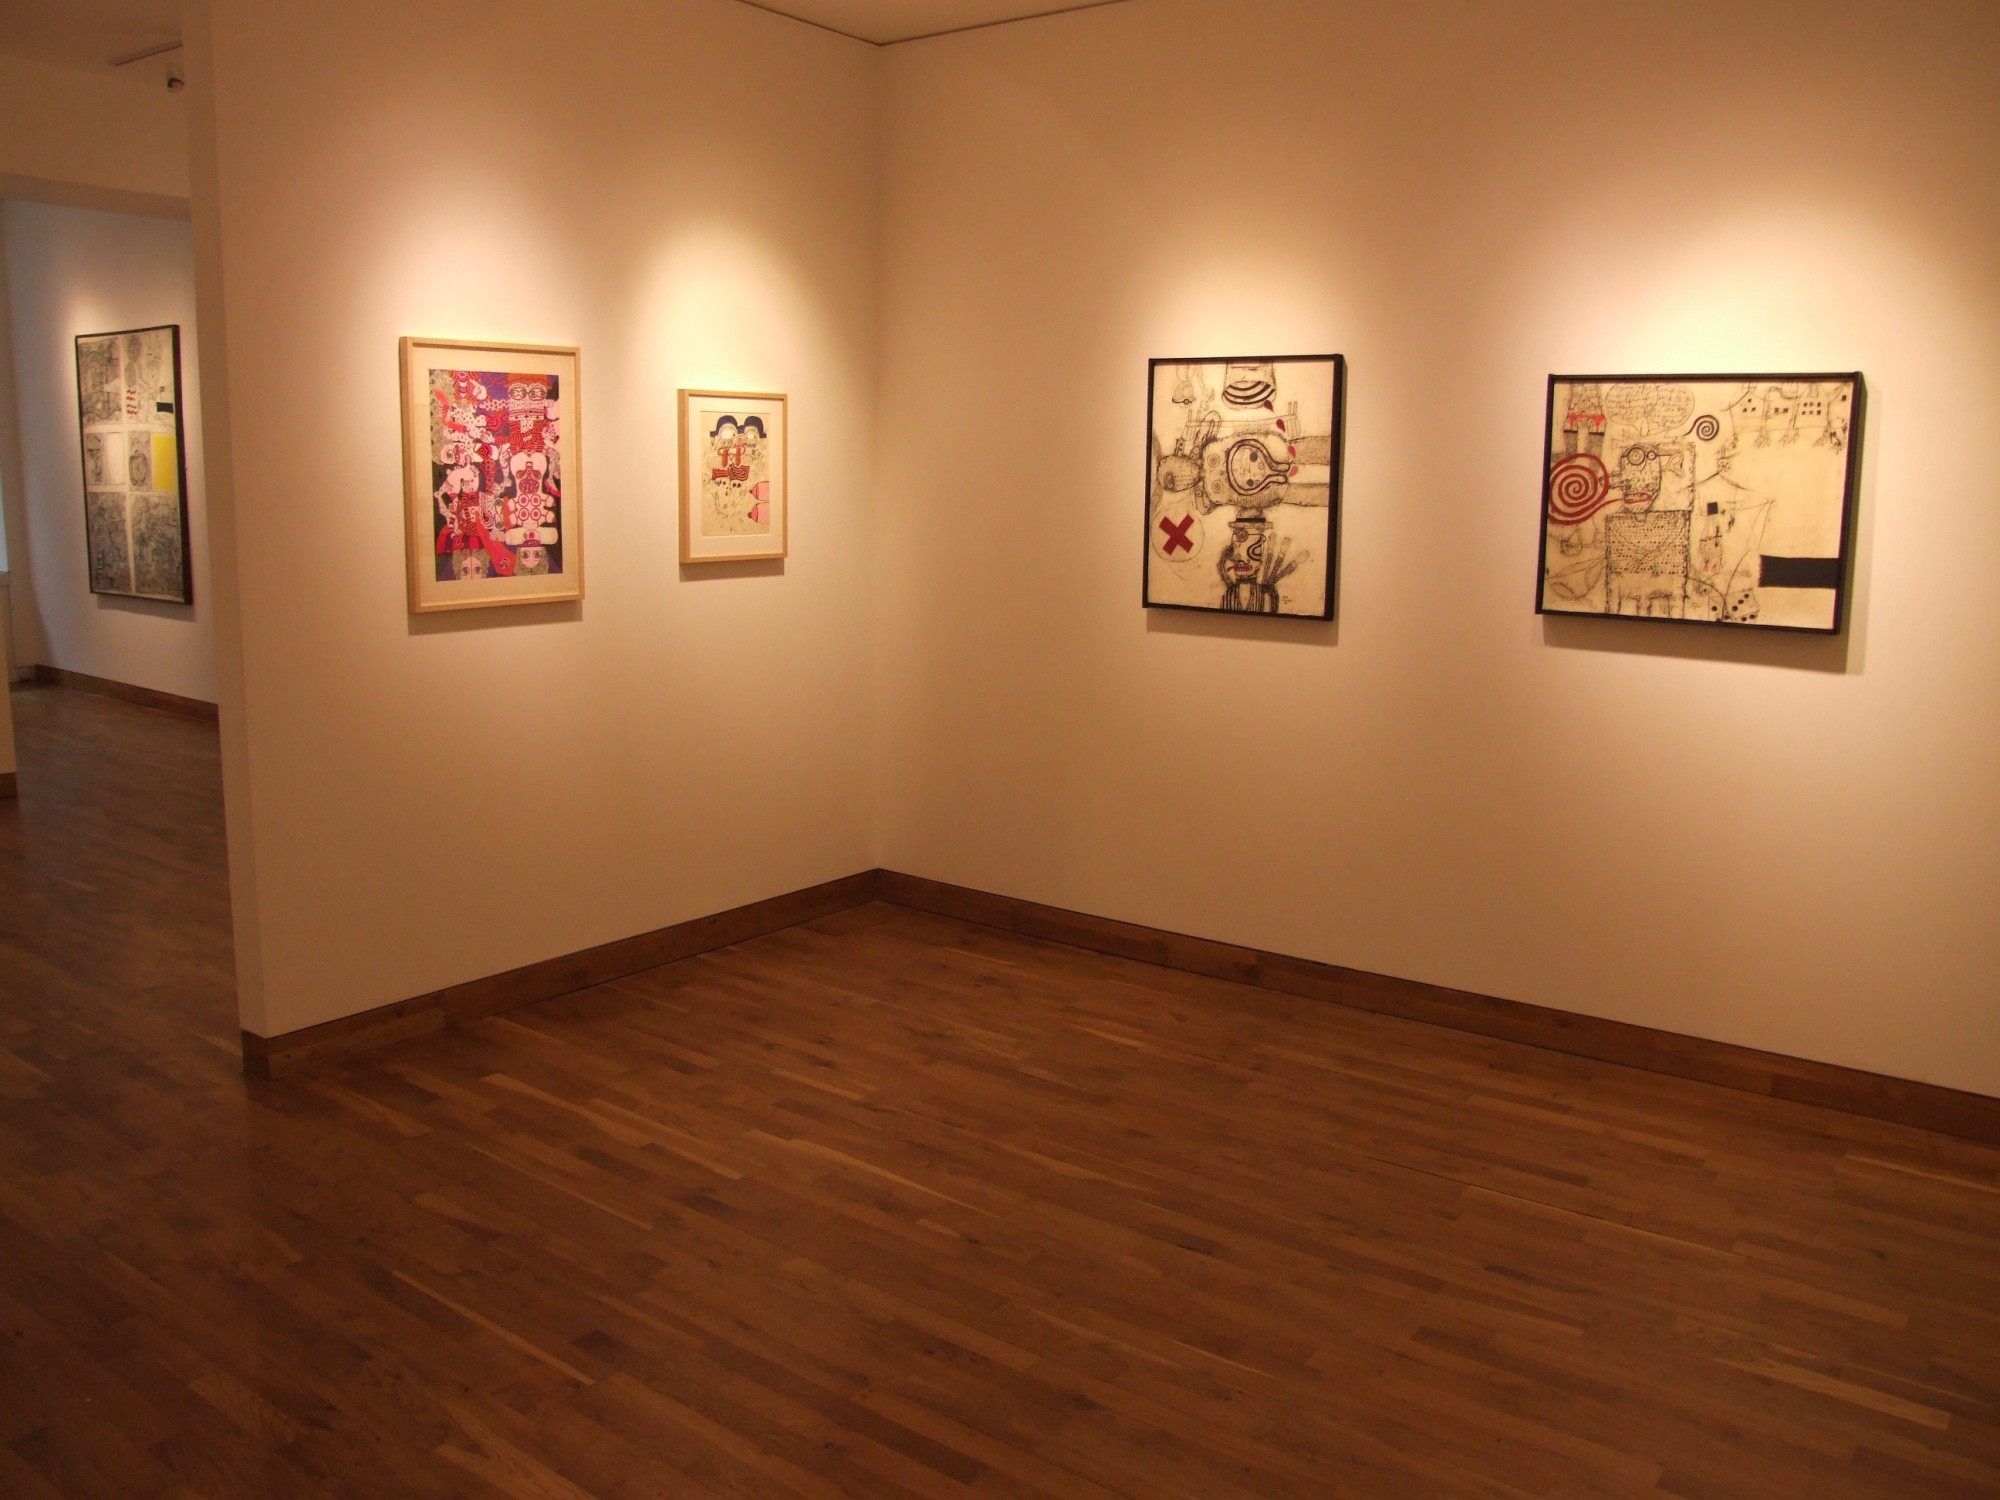 """<span class=""""link fancybox-details-link""""><a href=""""/exhibitions/98/works/image_standalone349/"""">View Detail Page</a></span><p>THE ELEGANT LIFE OF KEY HIRAGA   A JAPANESE ARTIST IN EUROPE 1965 - 1974   28 MAY - 18 JUL 2008   Installation View</p>"""